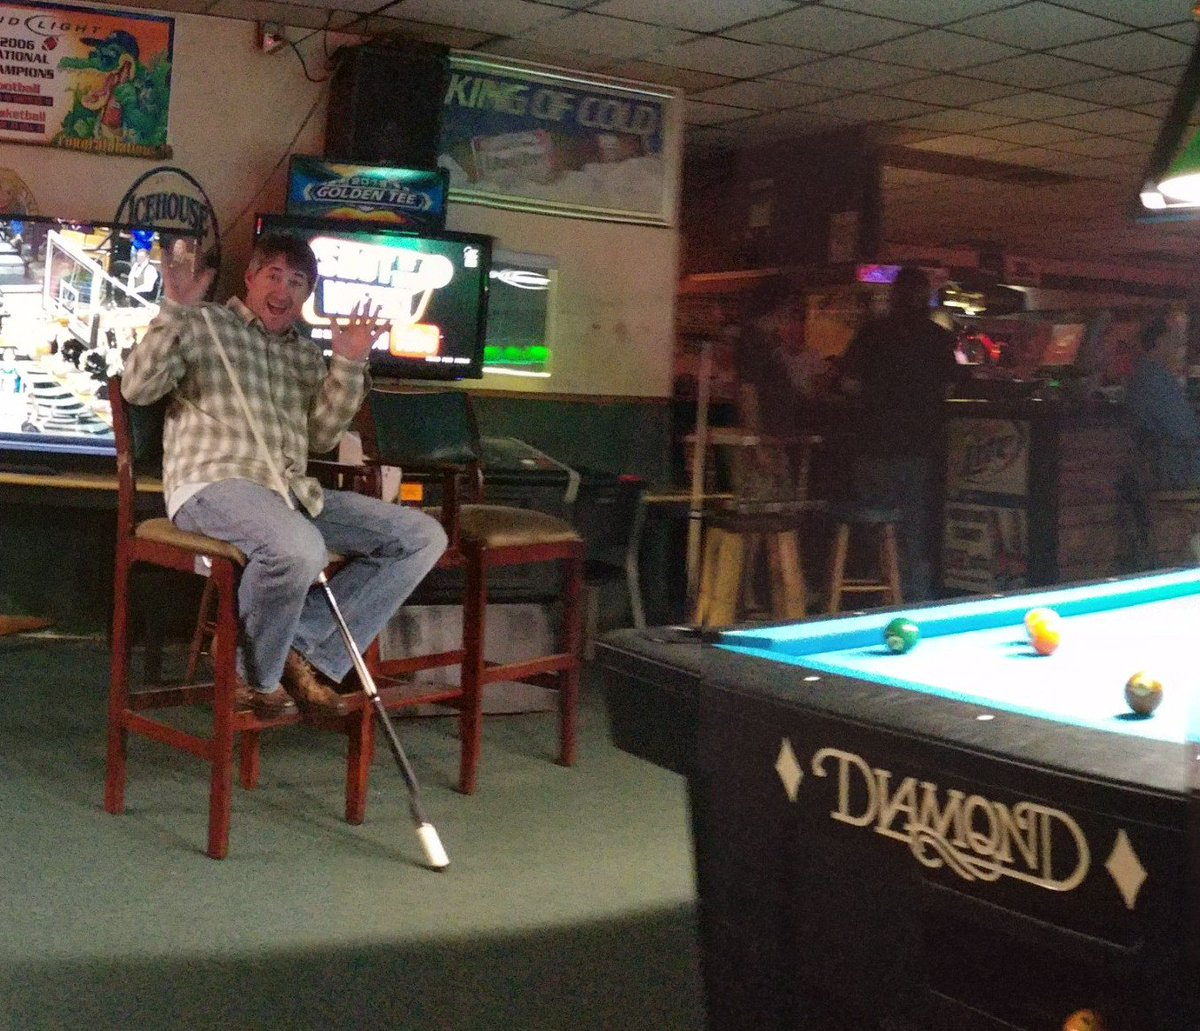 Dugout Billiards Sports Club On Twitter Visit The Dugout - Diamond professional pool table for sale